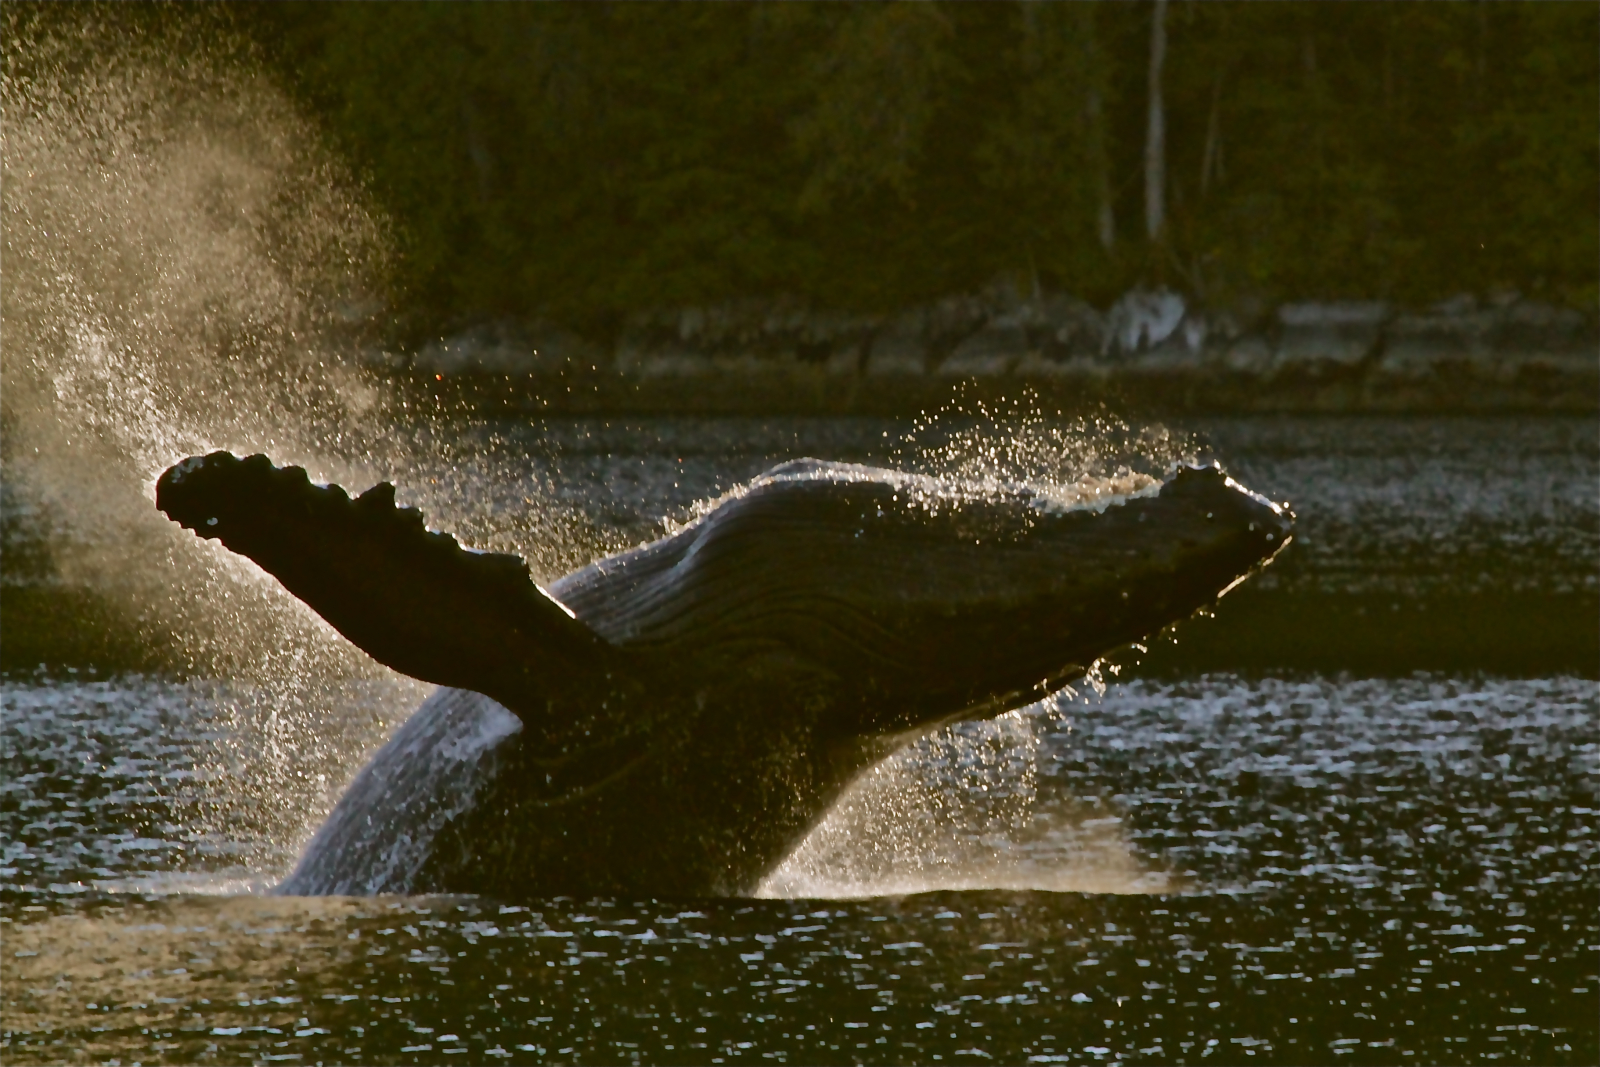 Humpback whale breeching at dusk. Photo by Trish Boyum.